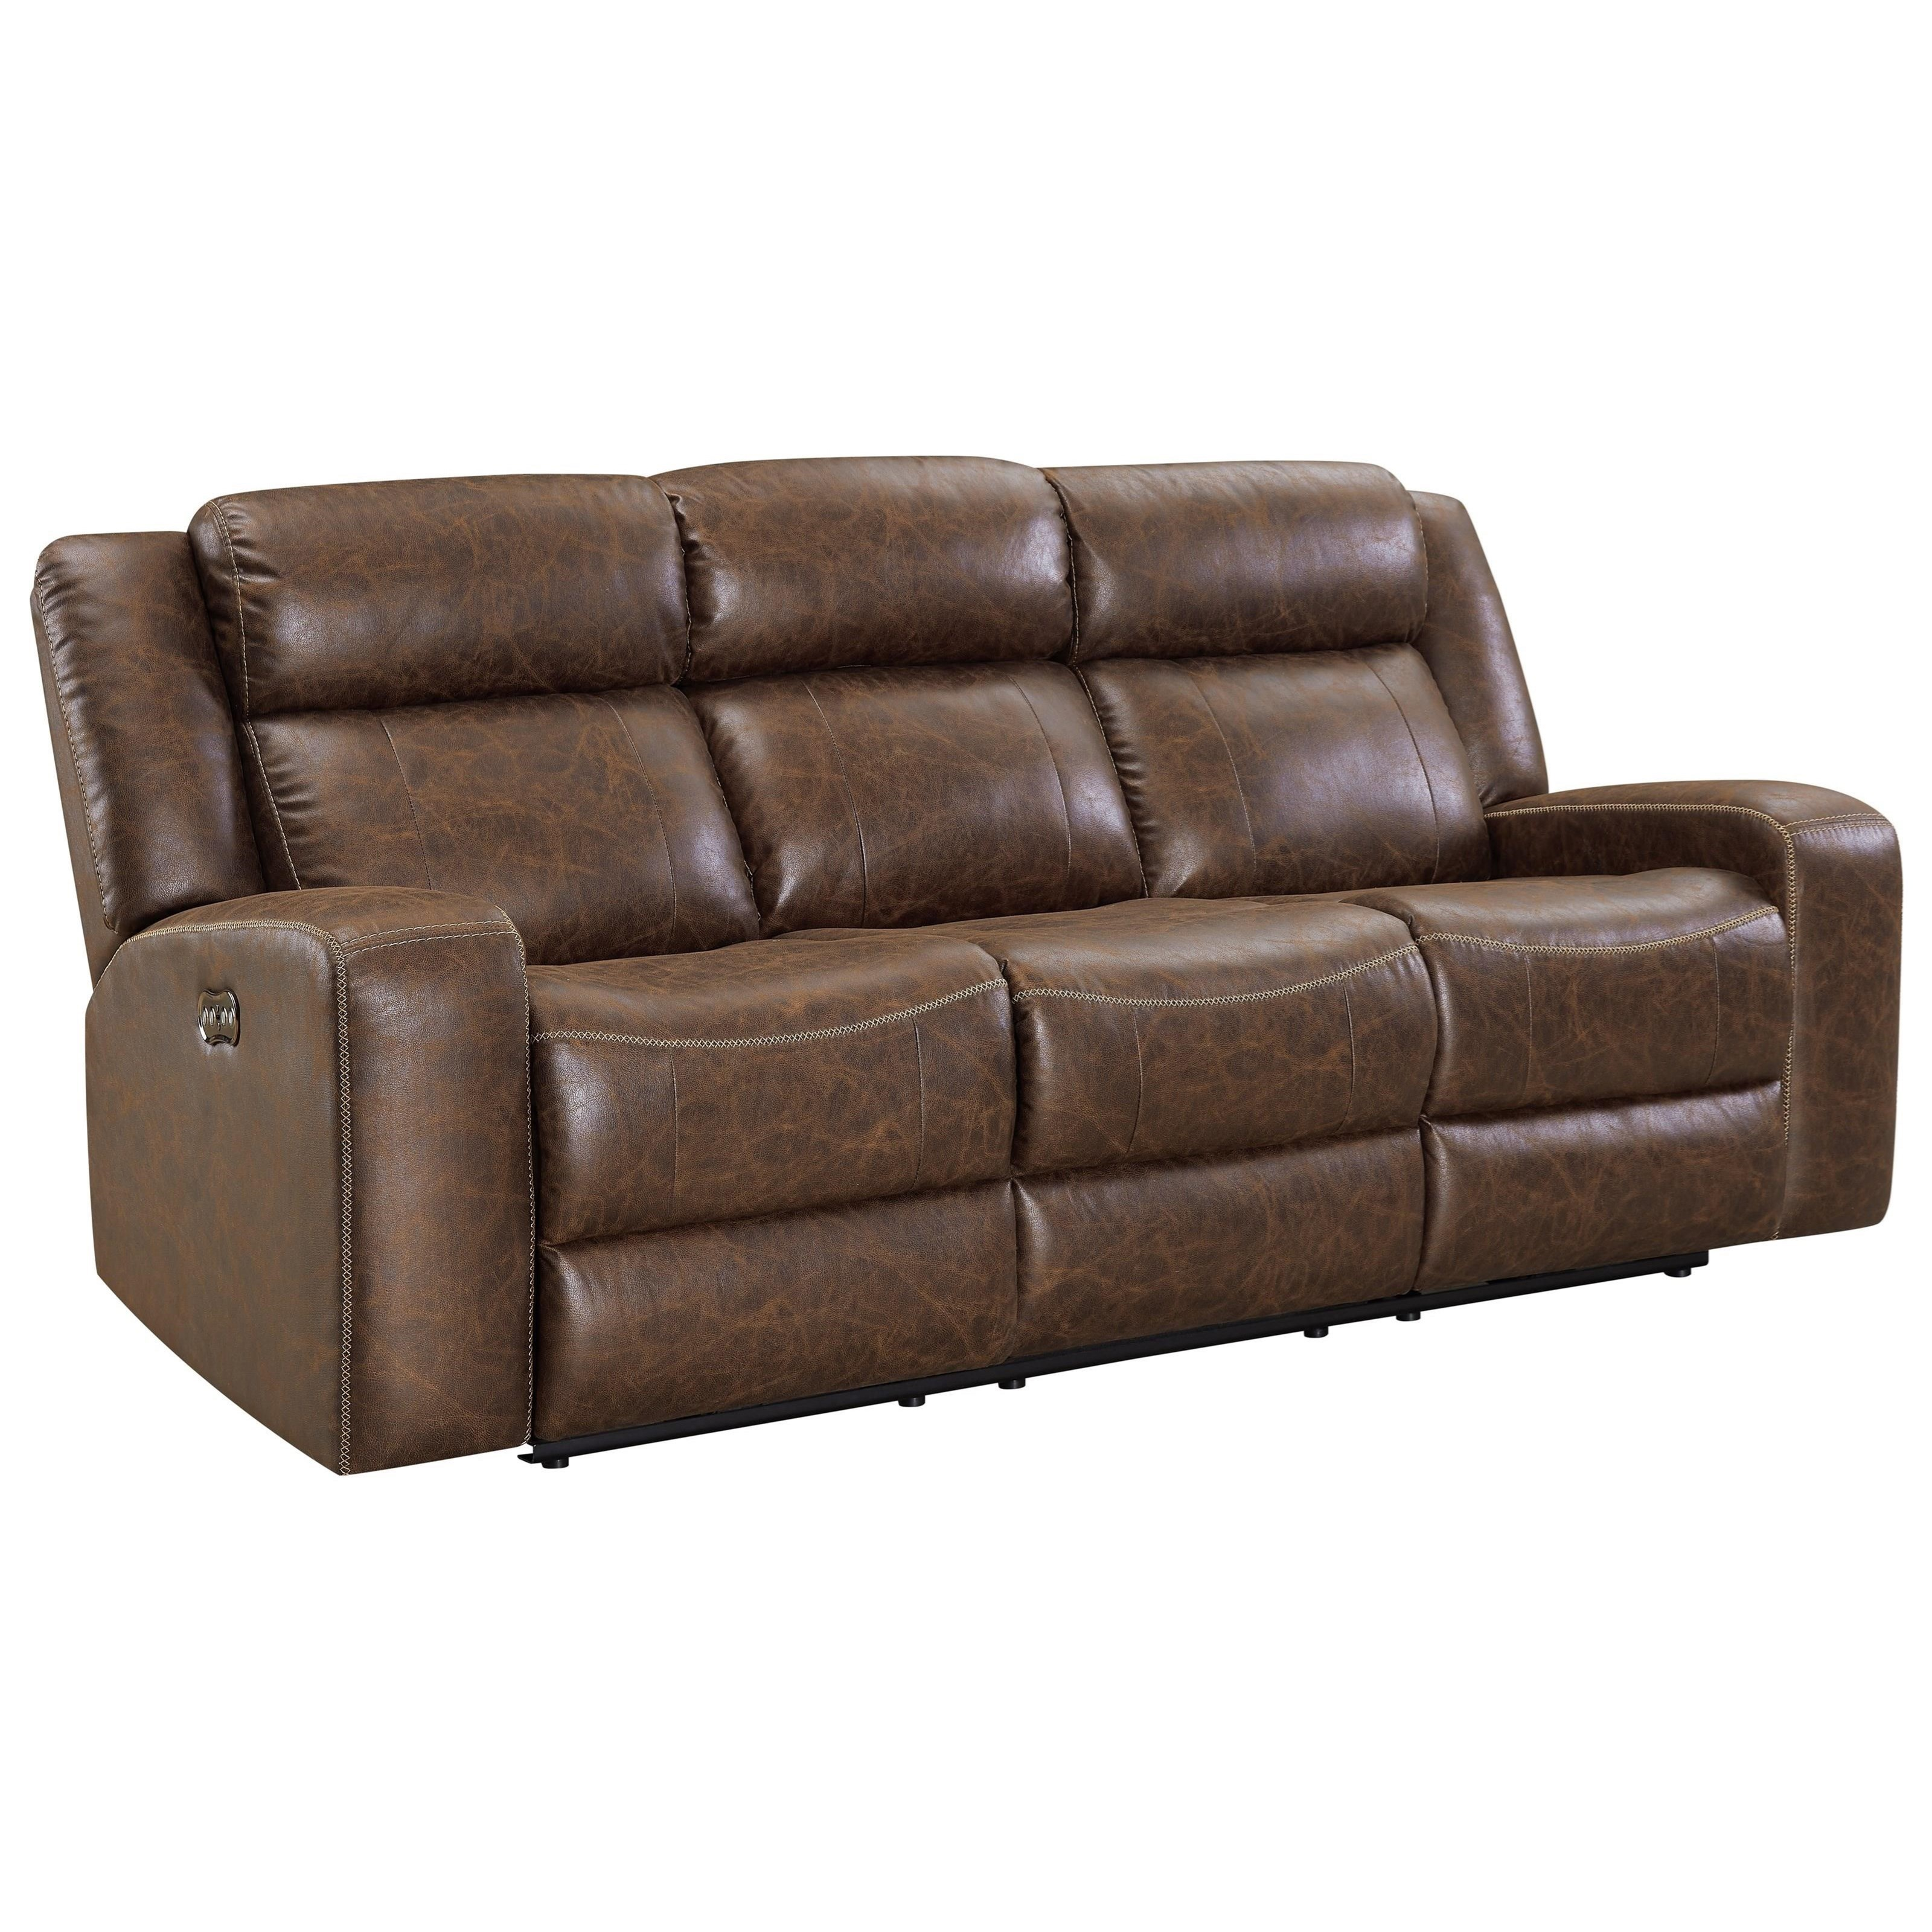 Atticus Power Dual Recliner Sofa by New Classic at Beds N Stuff